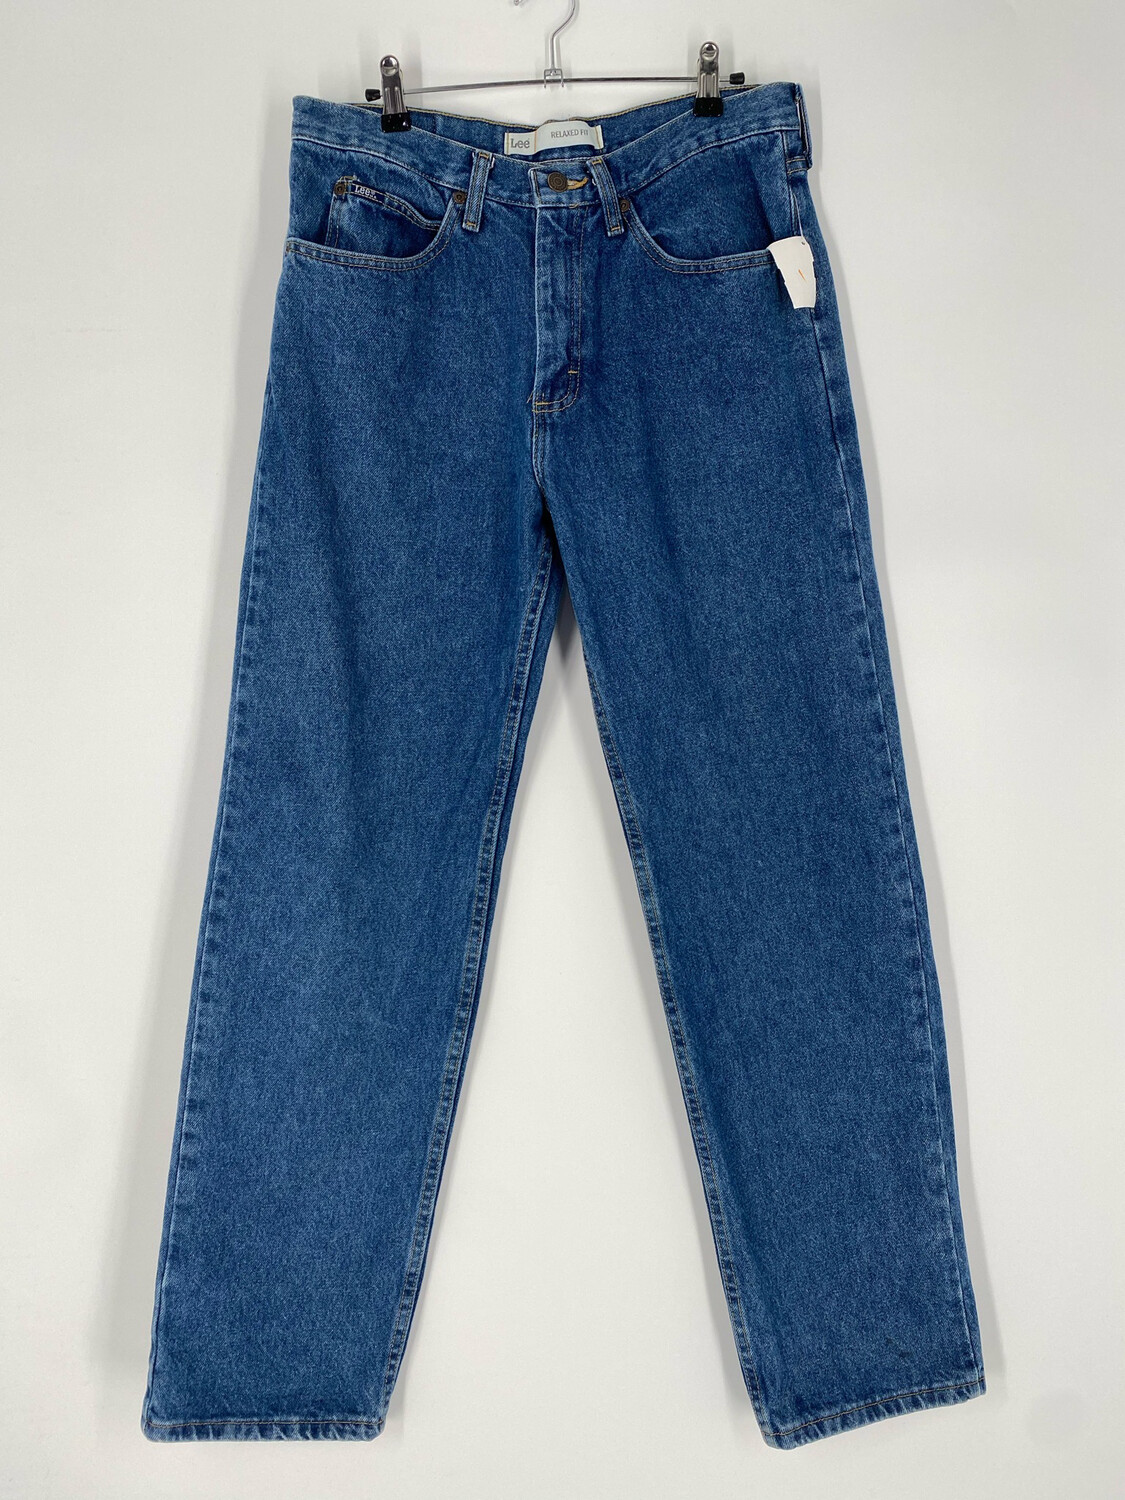 Lee Relaxed Fit Jeans Size 32